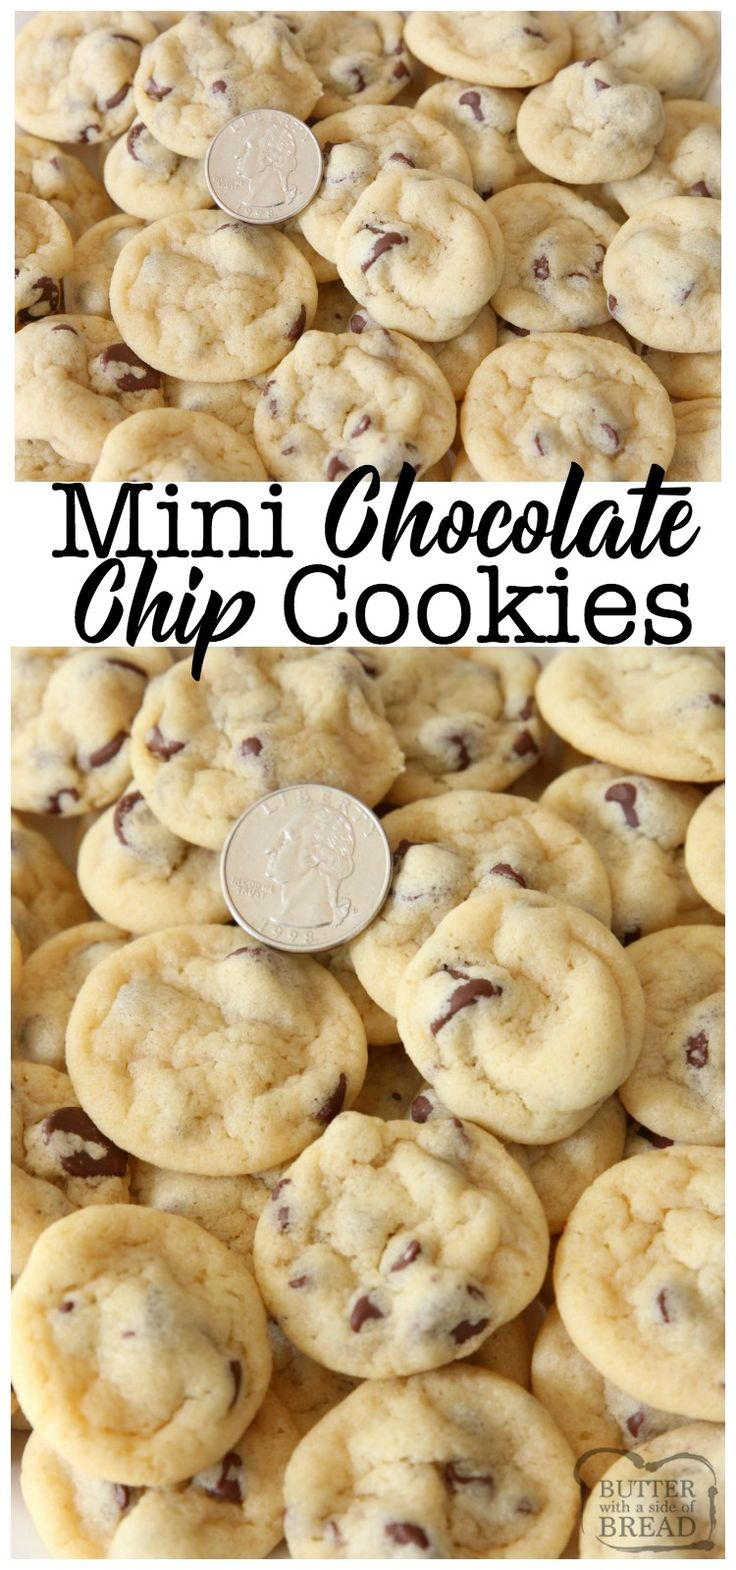 Mini Chocolate Chip Cookies are teeny tiny chocolate chip #cookies about the size of a quarter! Soft, chewy poppable cookies that are perfect for parties. Easy cookie #recipe from Butter With A Side of Bread #chocolate #chocolatechip